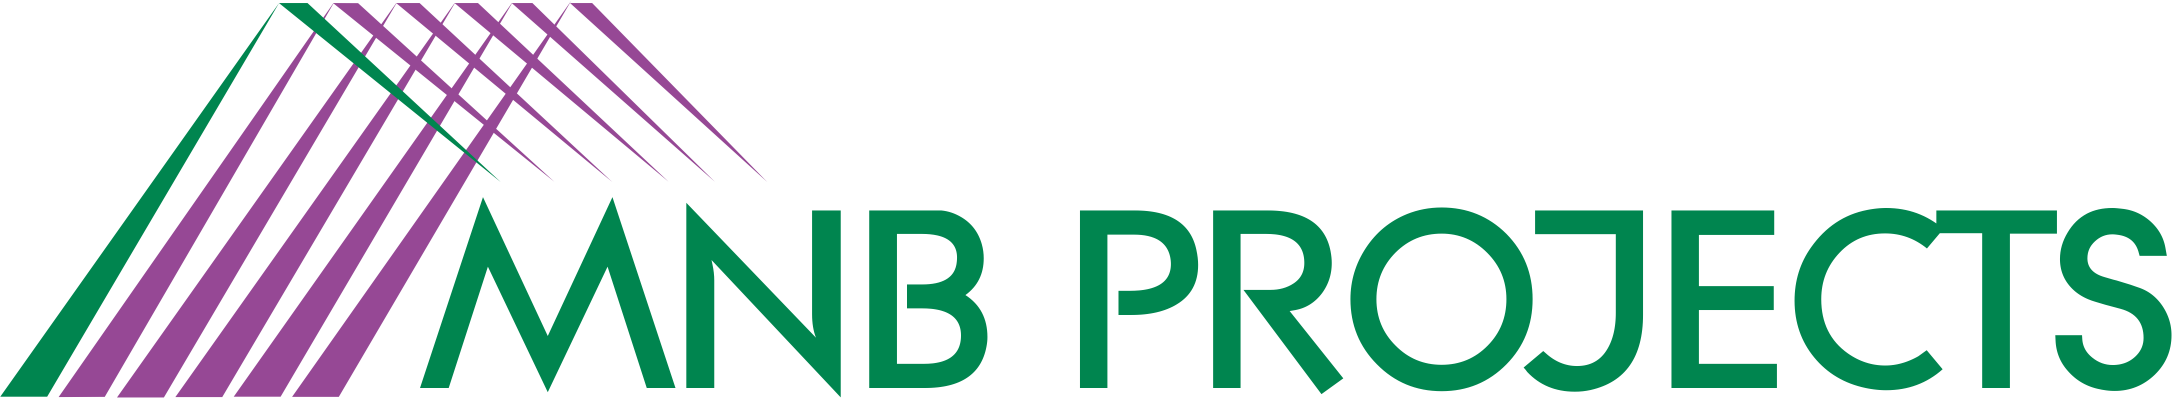 MNB Projects Logo